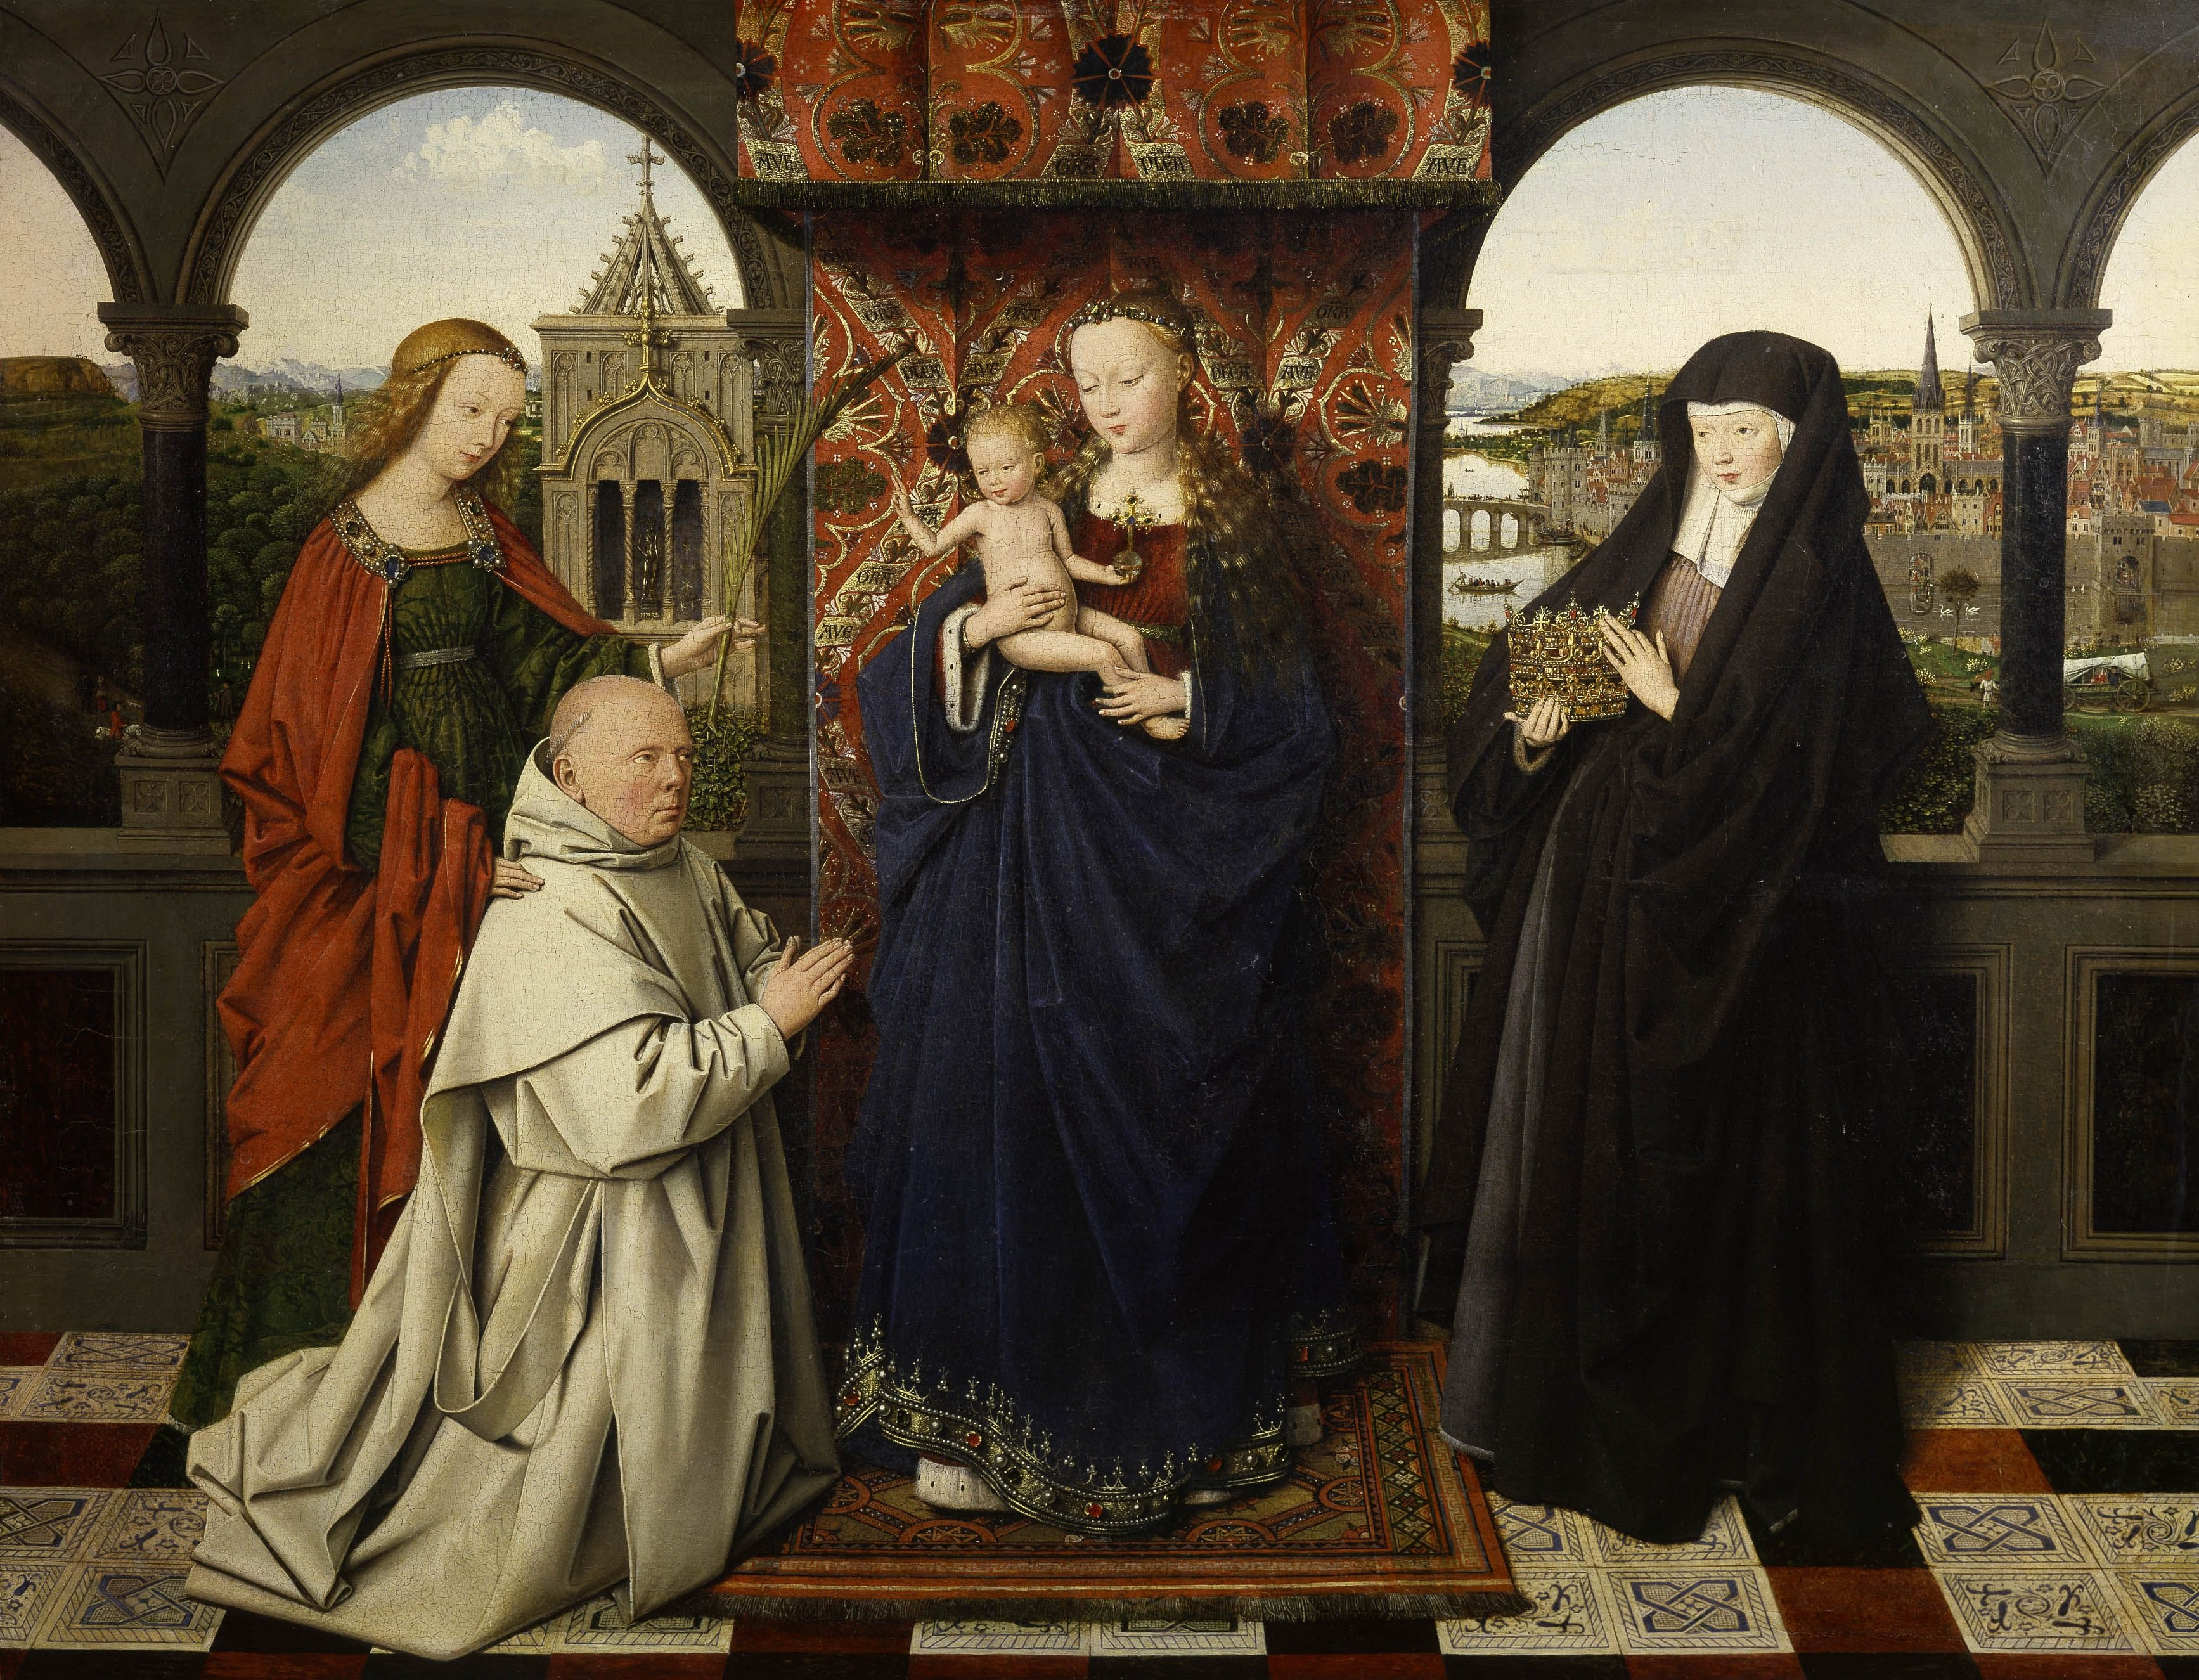 https://upload.wikimedia.org/wikipedia/commons/3/37/Jan_van_Eyck_-_Virgin_and_Child%2C_with_Saints_and_Donor_-_1441_-_Frick_Collection.jpg